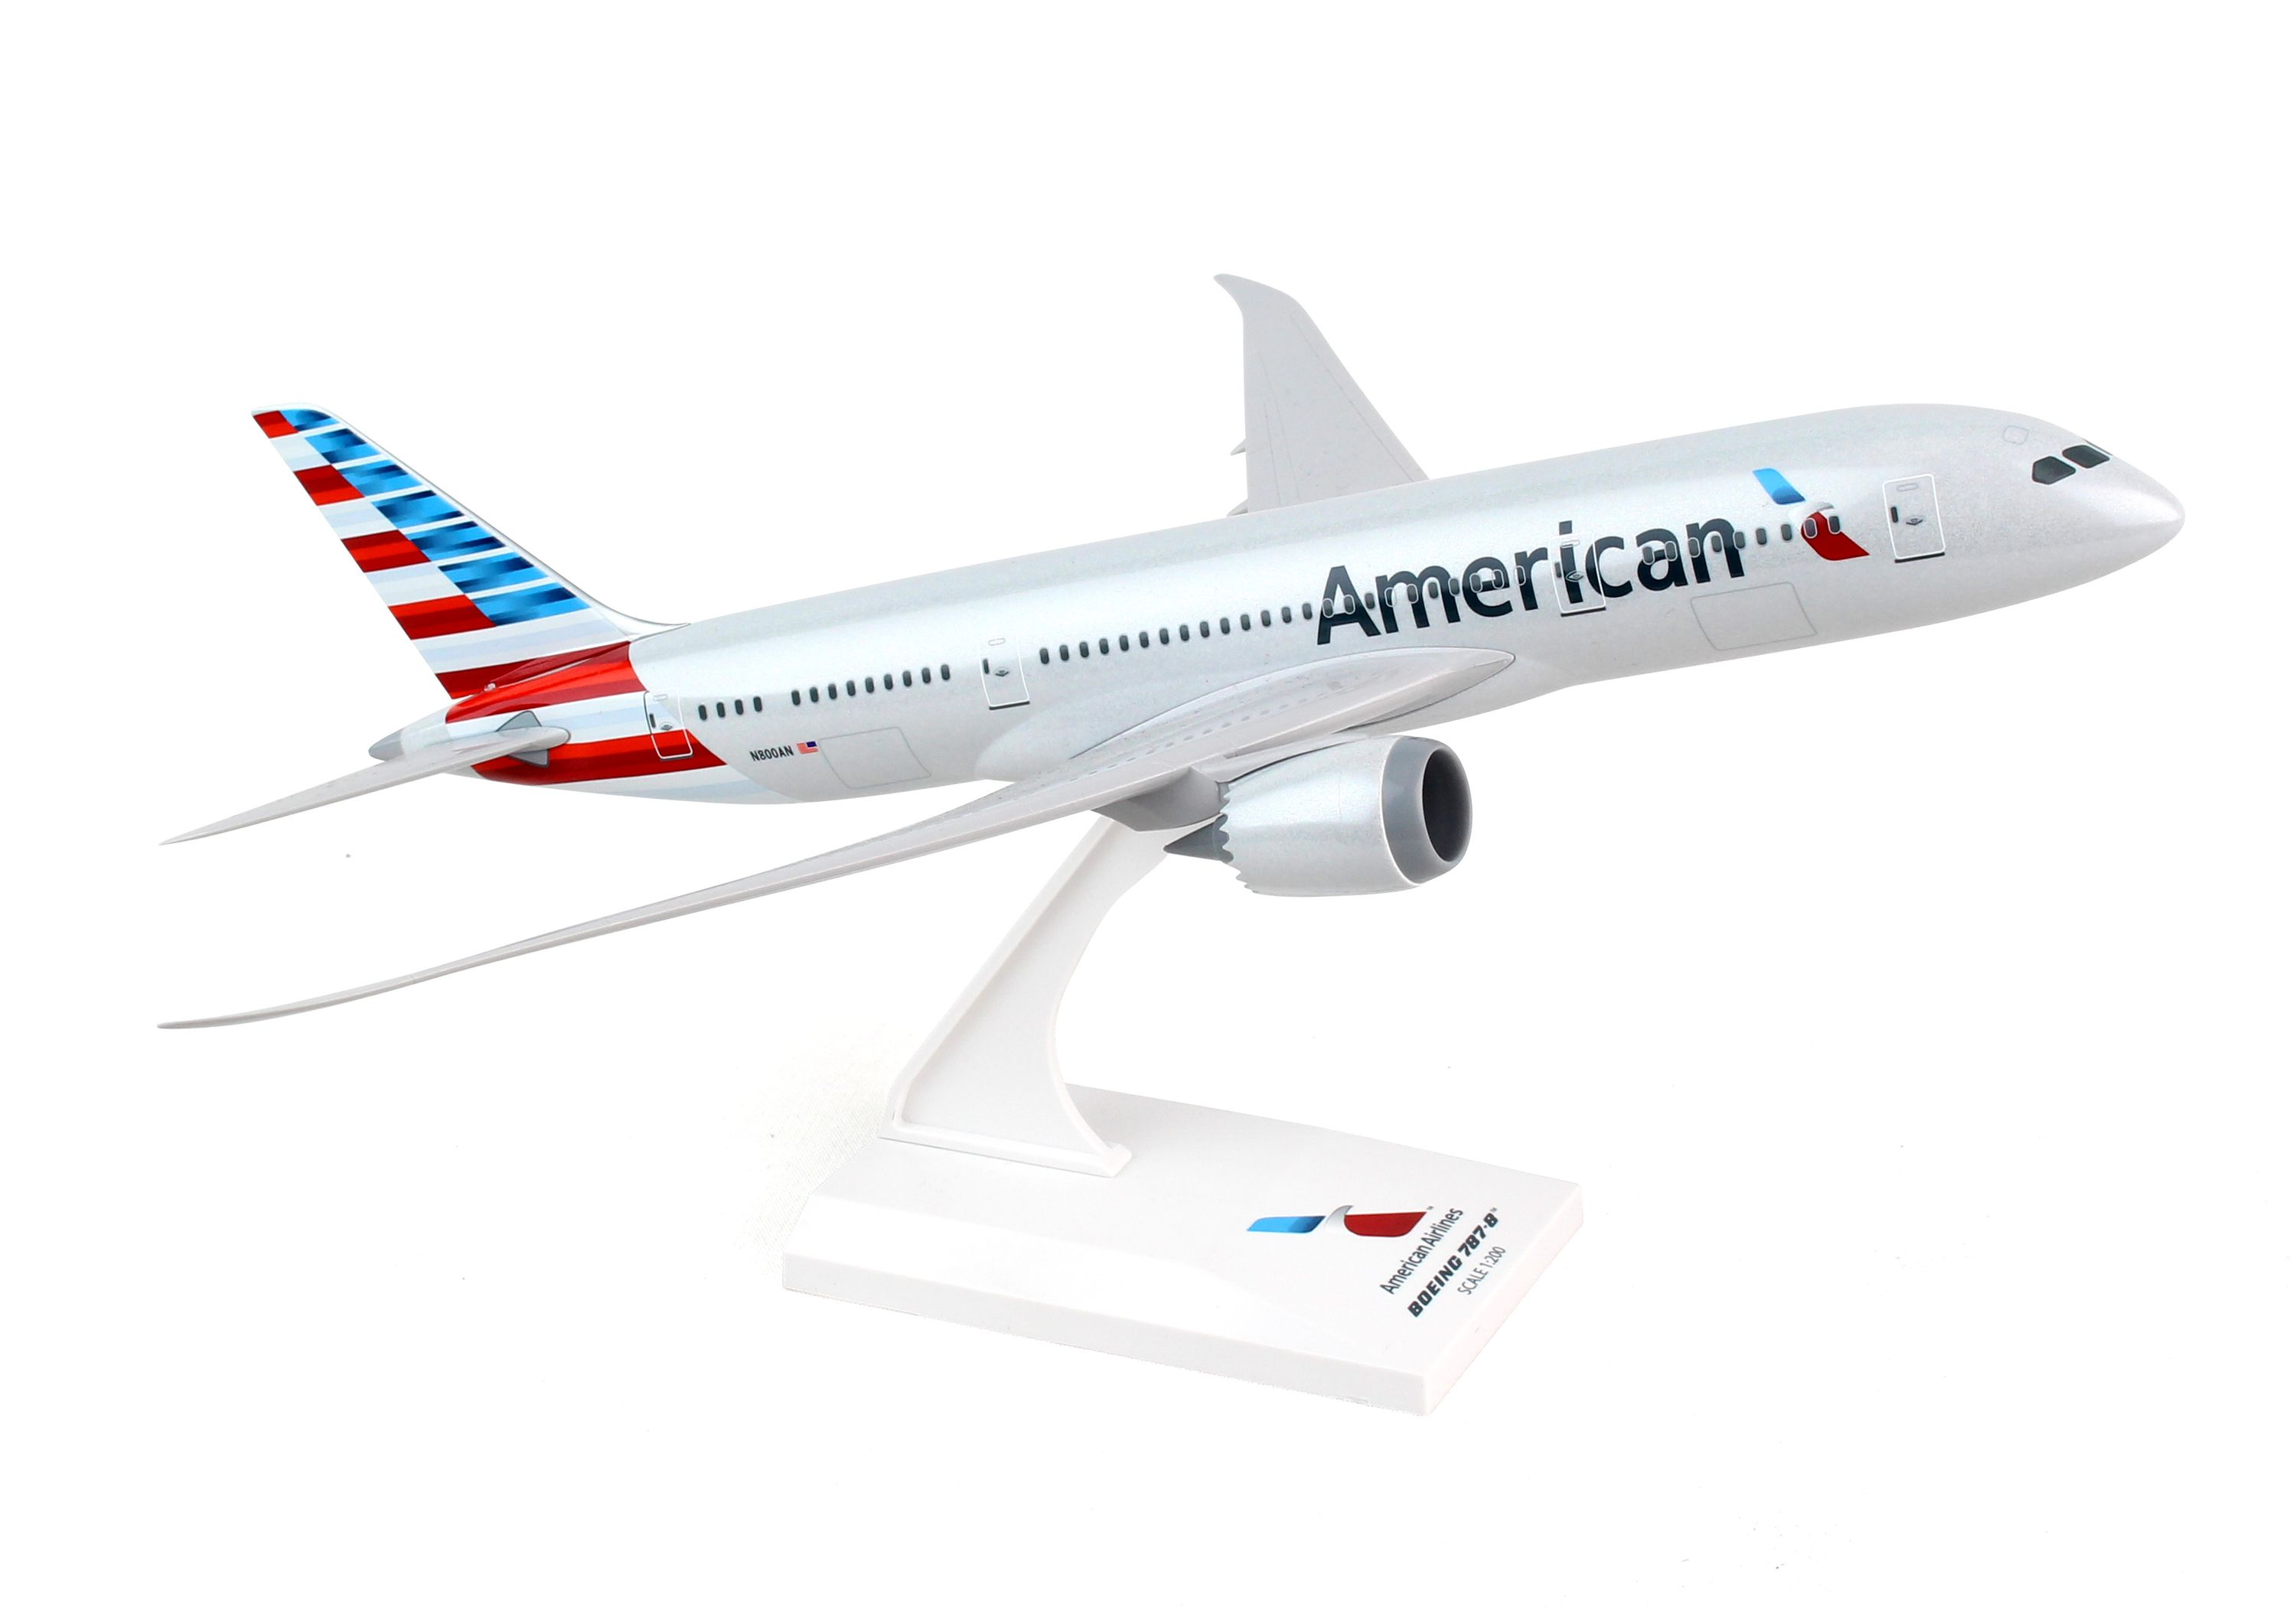 SkyMarks Flugzeugmodell American Airlines Boeing 787-8 Maßstab 1:200